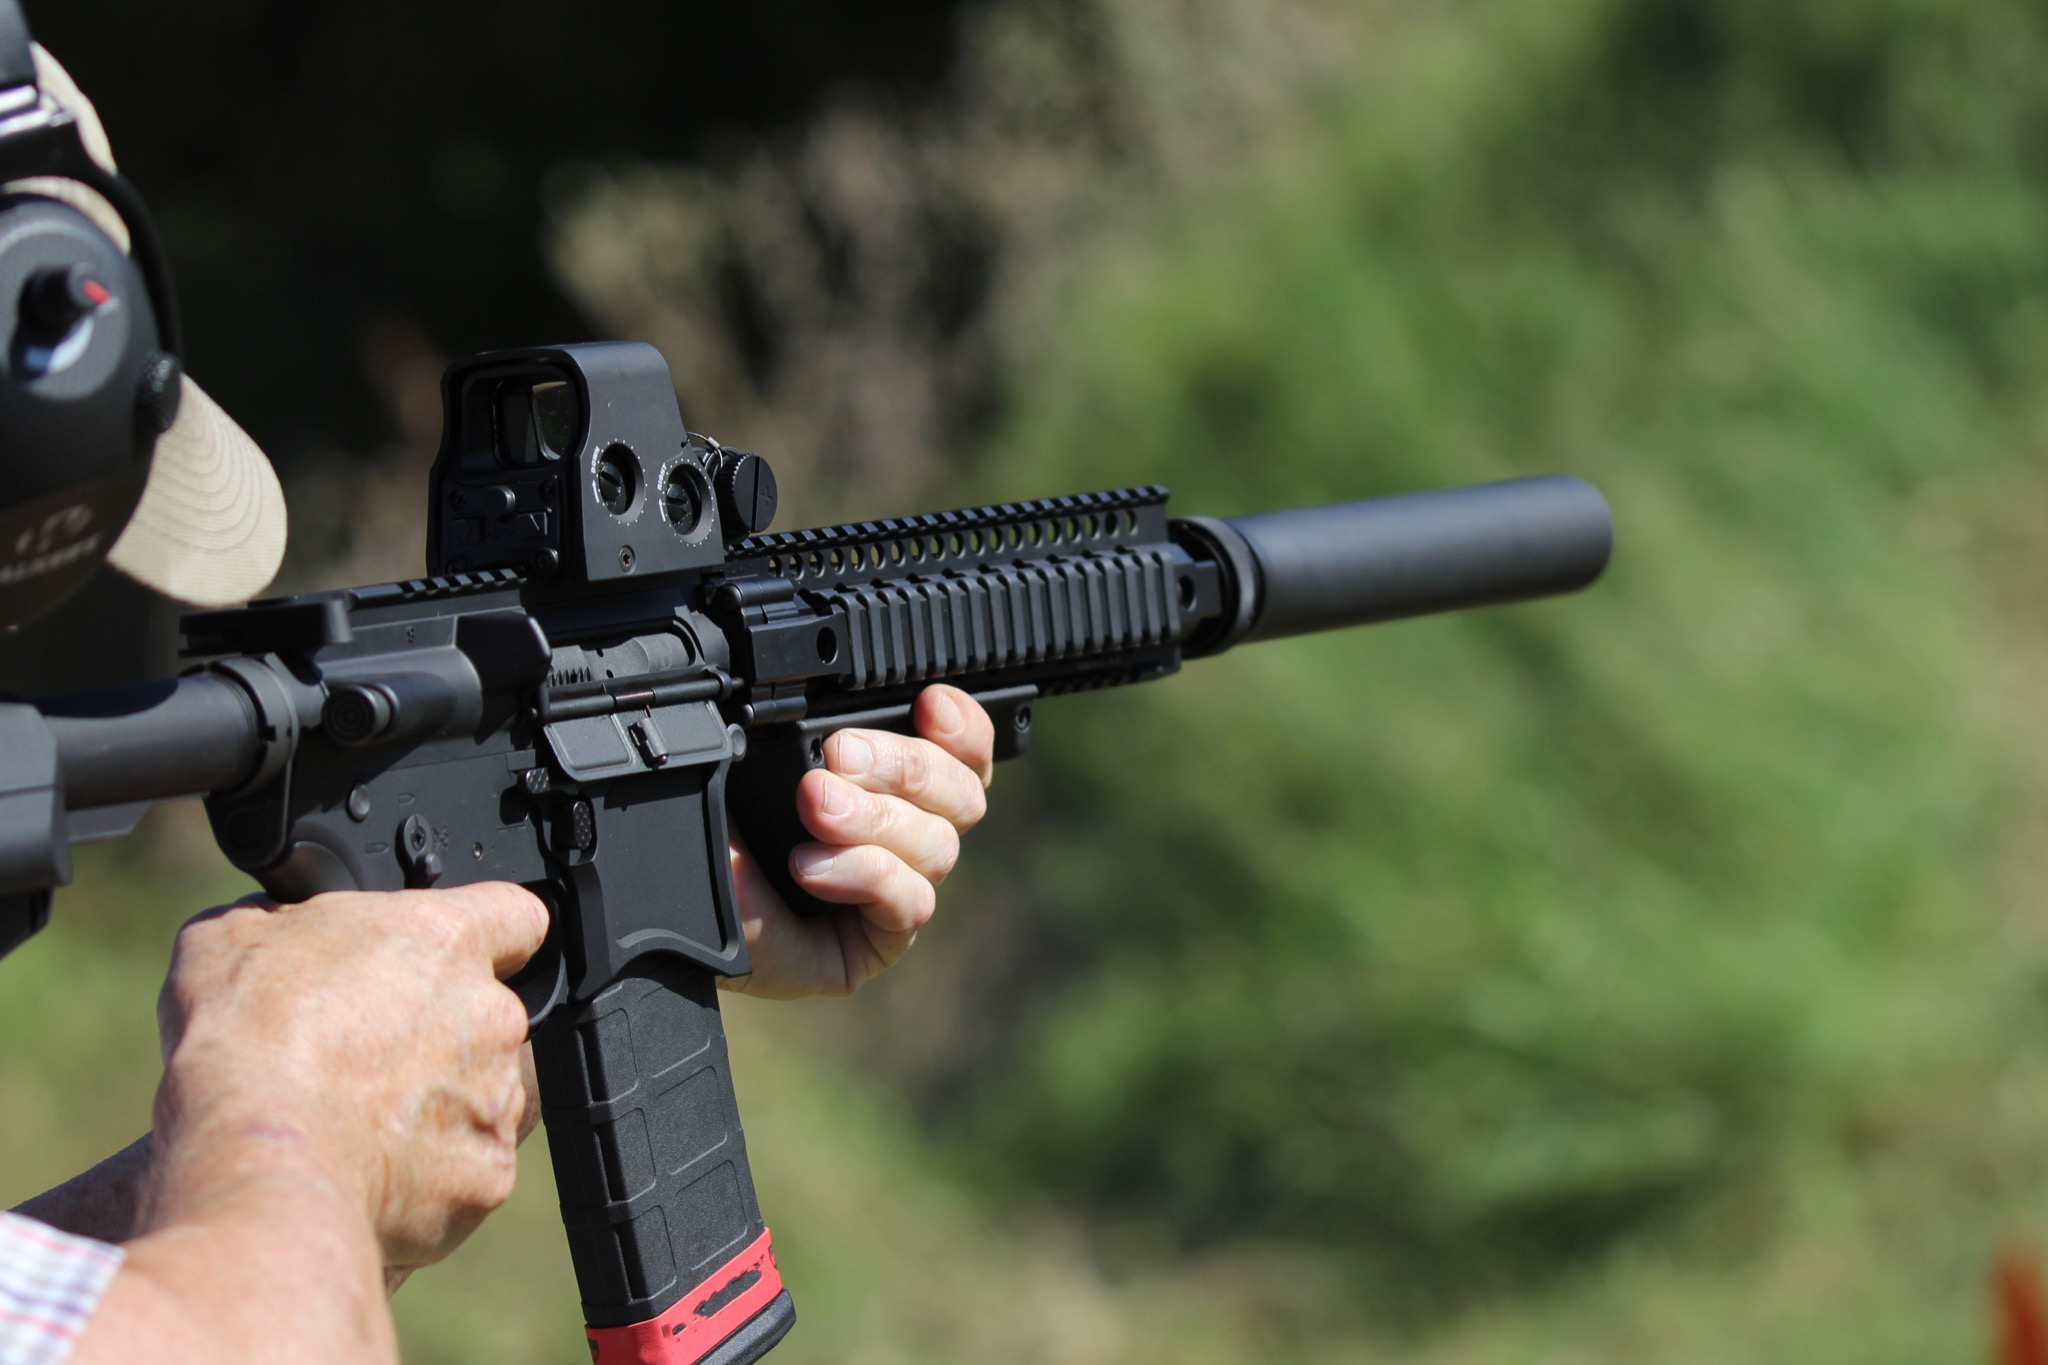 Washington University Student Suspended After AR-15 Was Found In Fraternity House